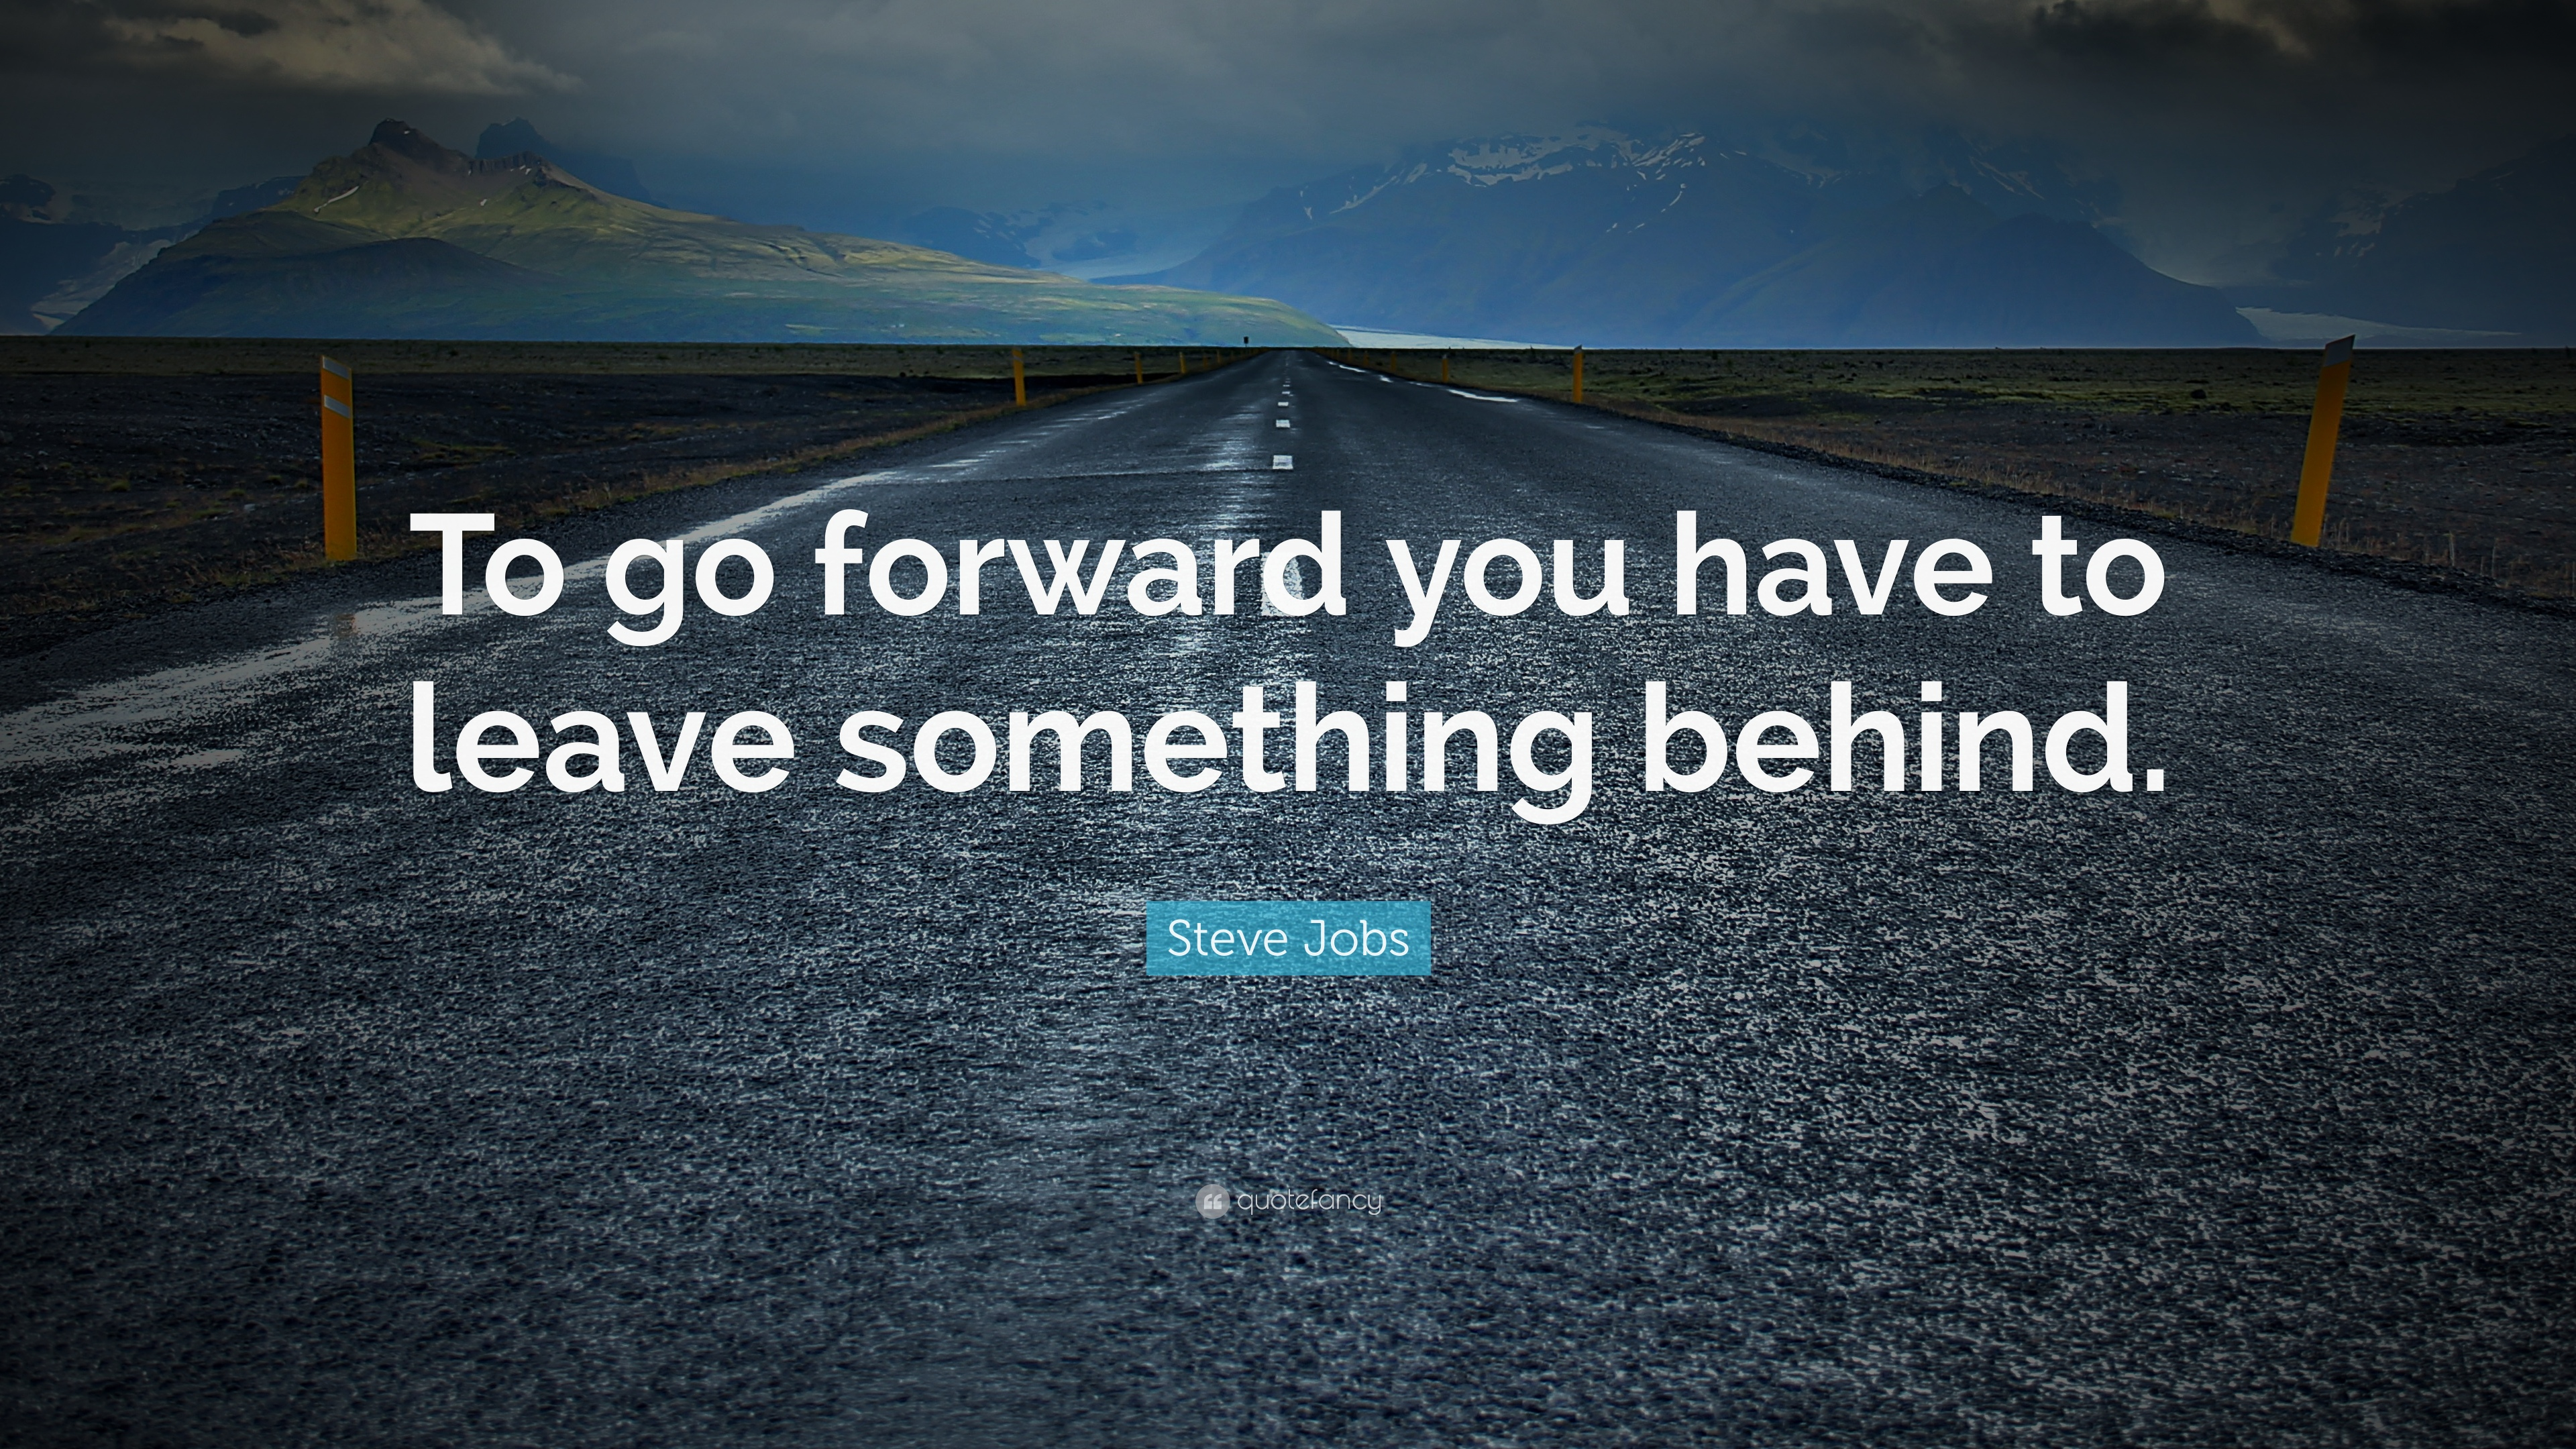 Captivating Steve Jobs Quote: U201cTo Go Forward You Have To Leave Something Behind.u201d Awesome Design